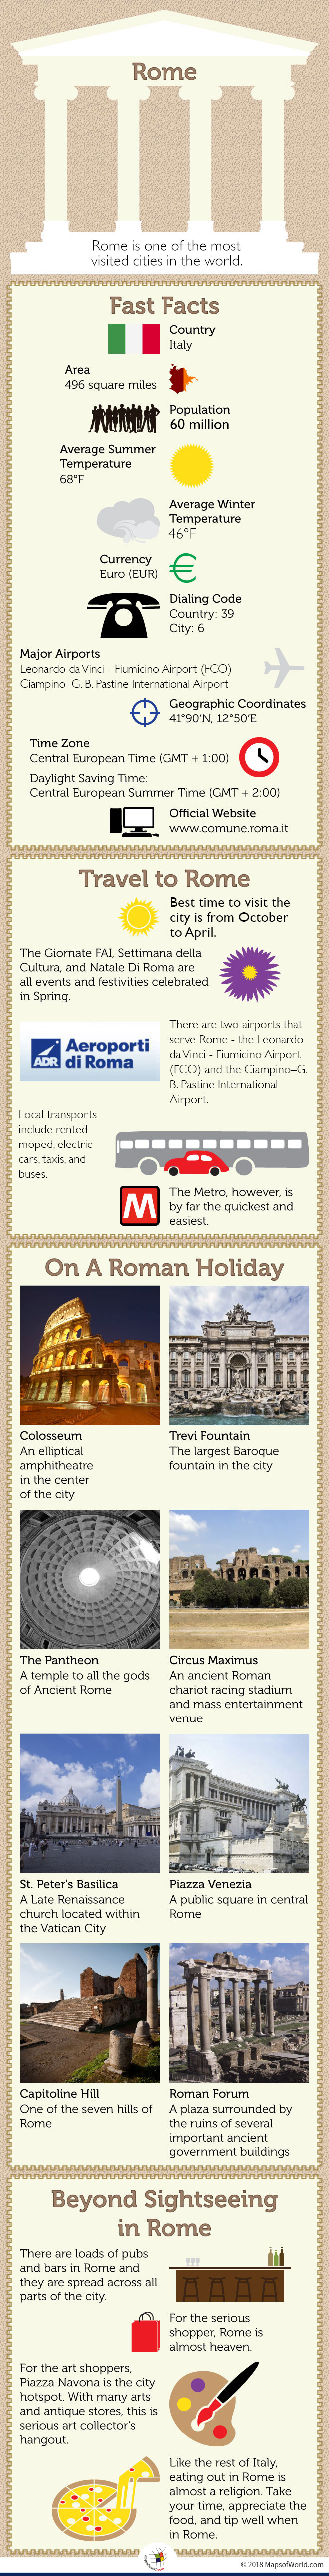 Infographic Stating Rome's Fast Facts